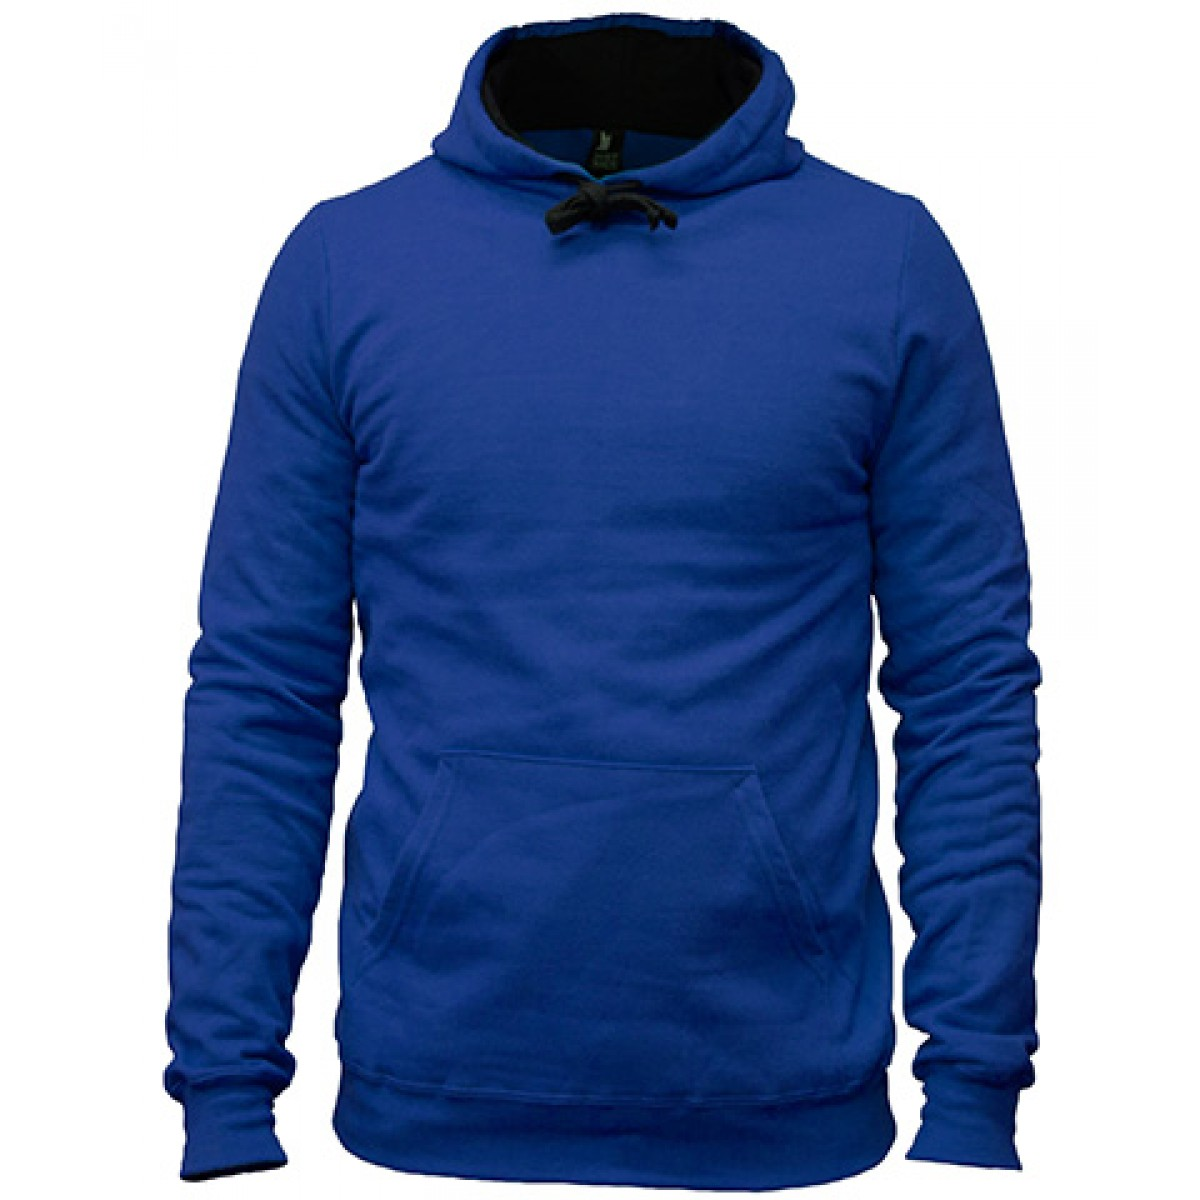 Concert Fleece Hoodie-Royal Blue-XL